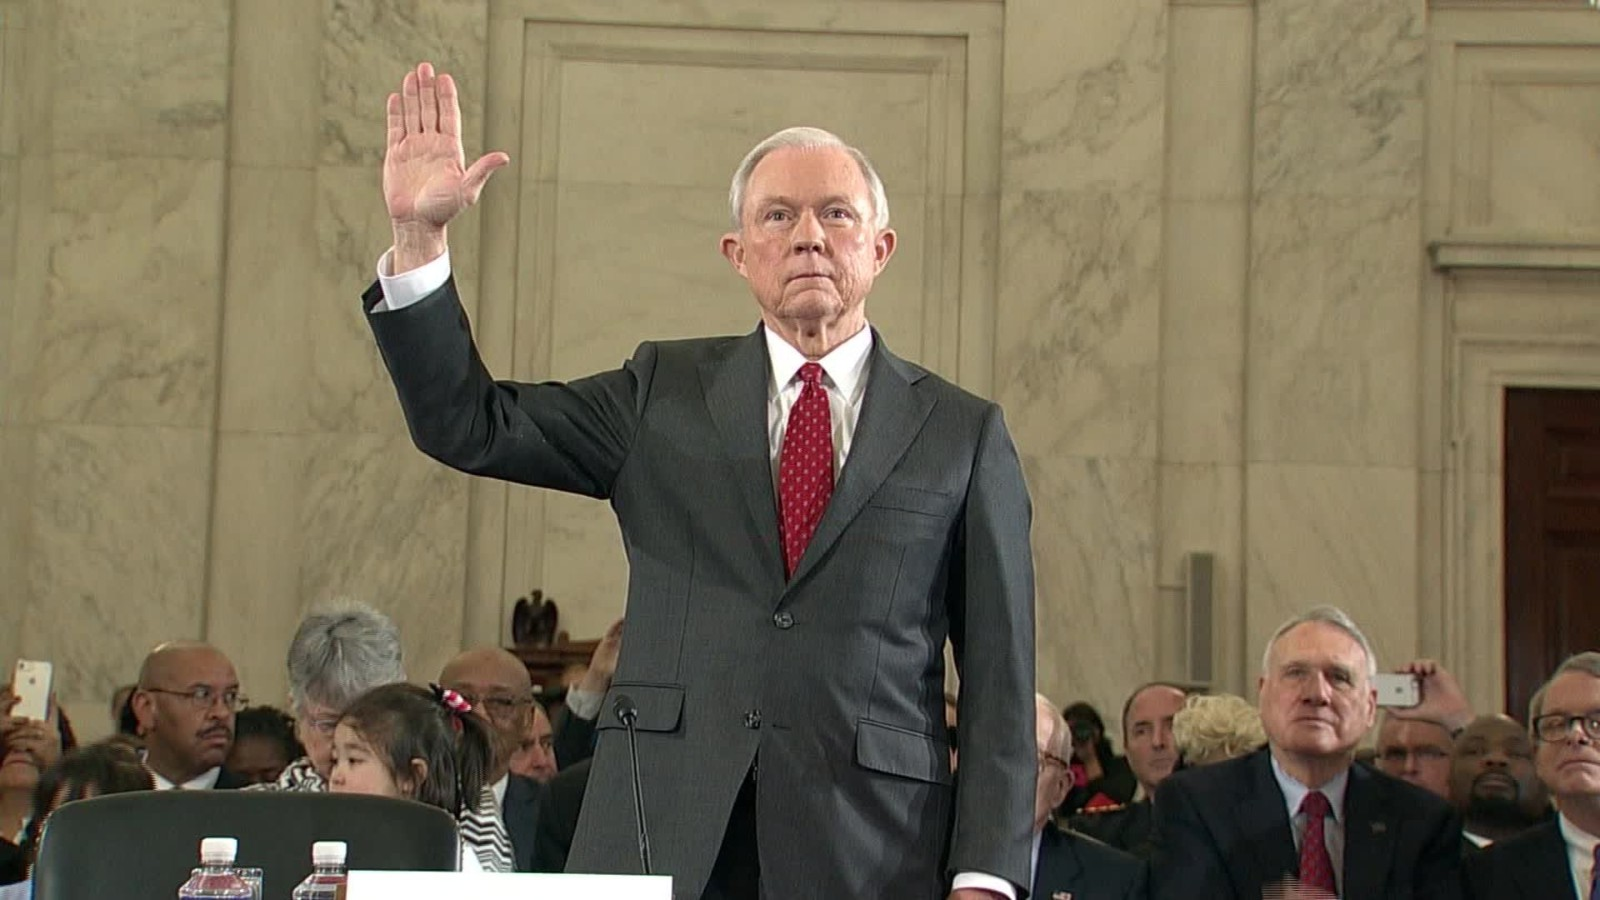 jeff sessions takes on racism charges pledges to recuse himself from clinton probes cnnpolitics. Resume Example. Resume CV Cover Letter